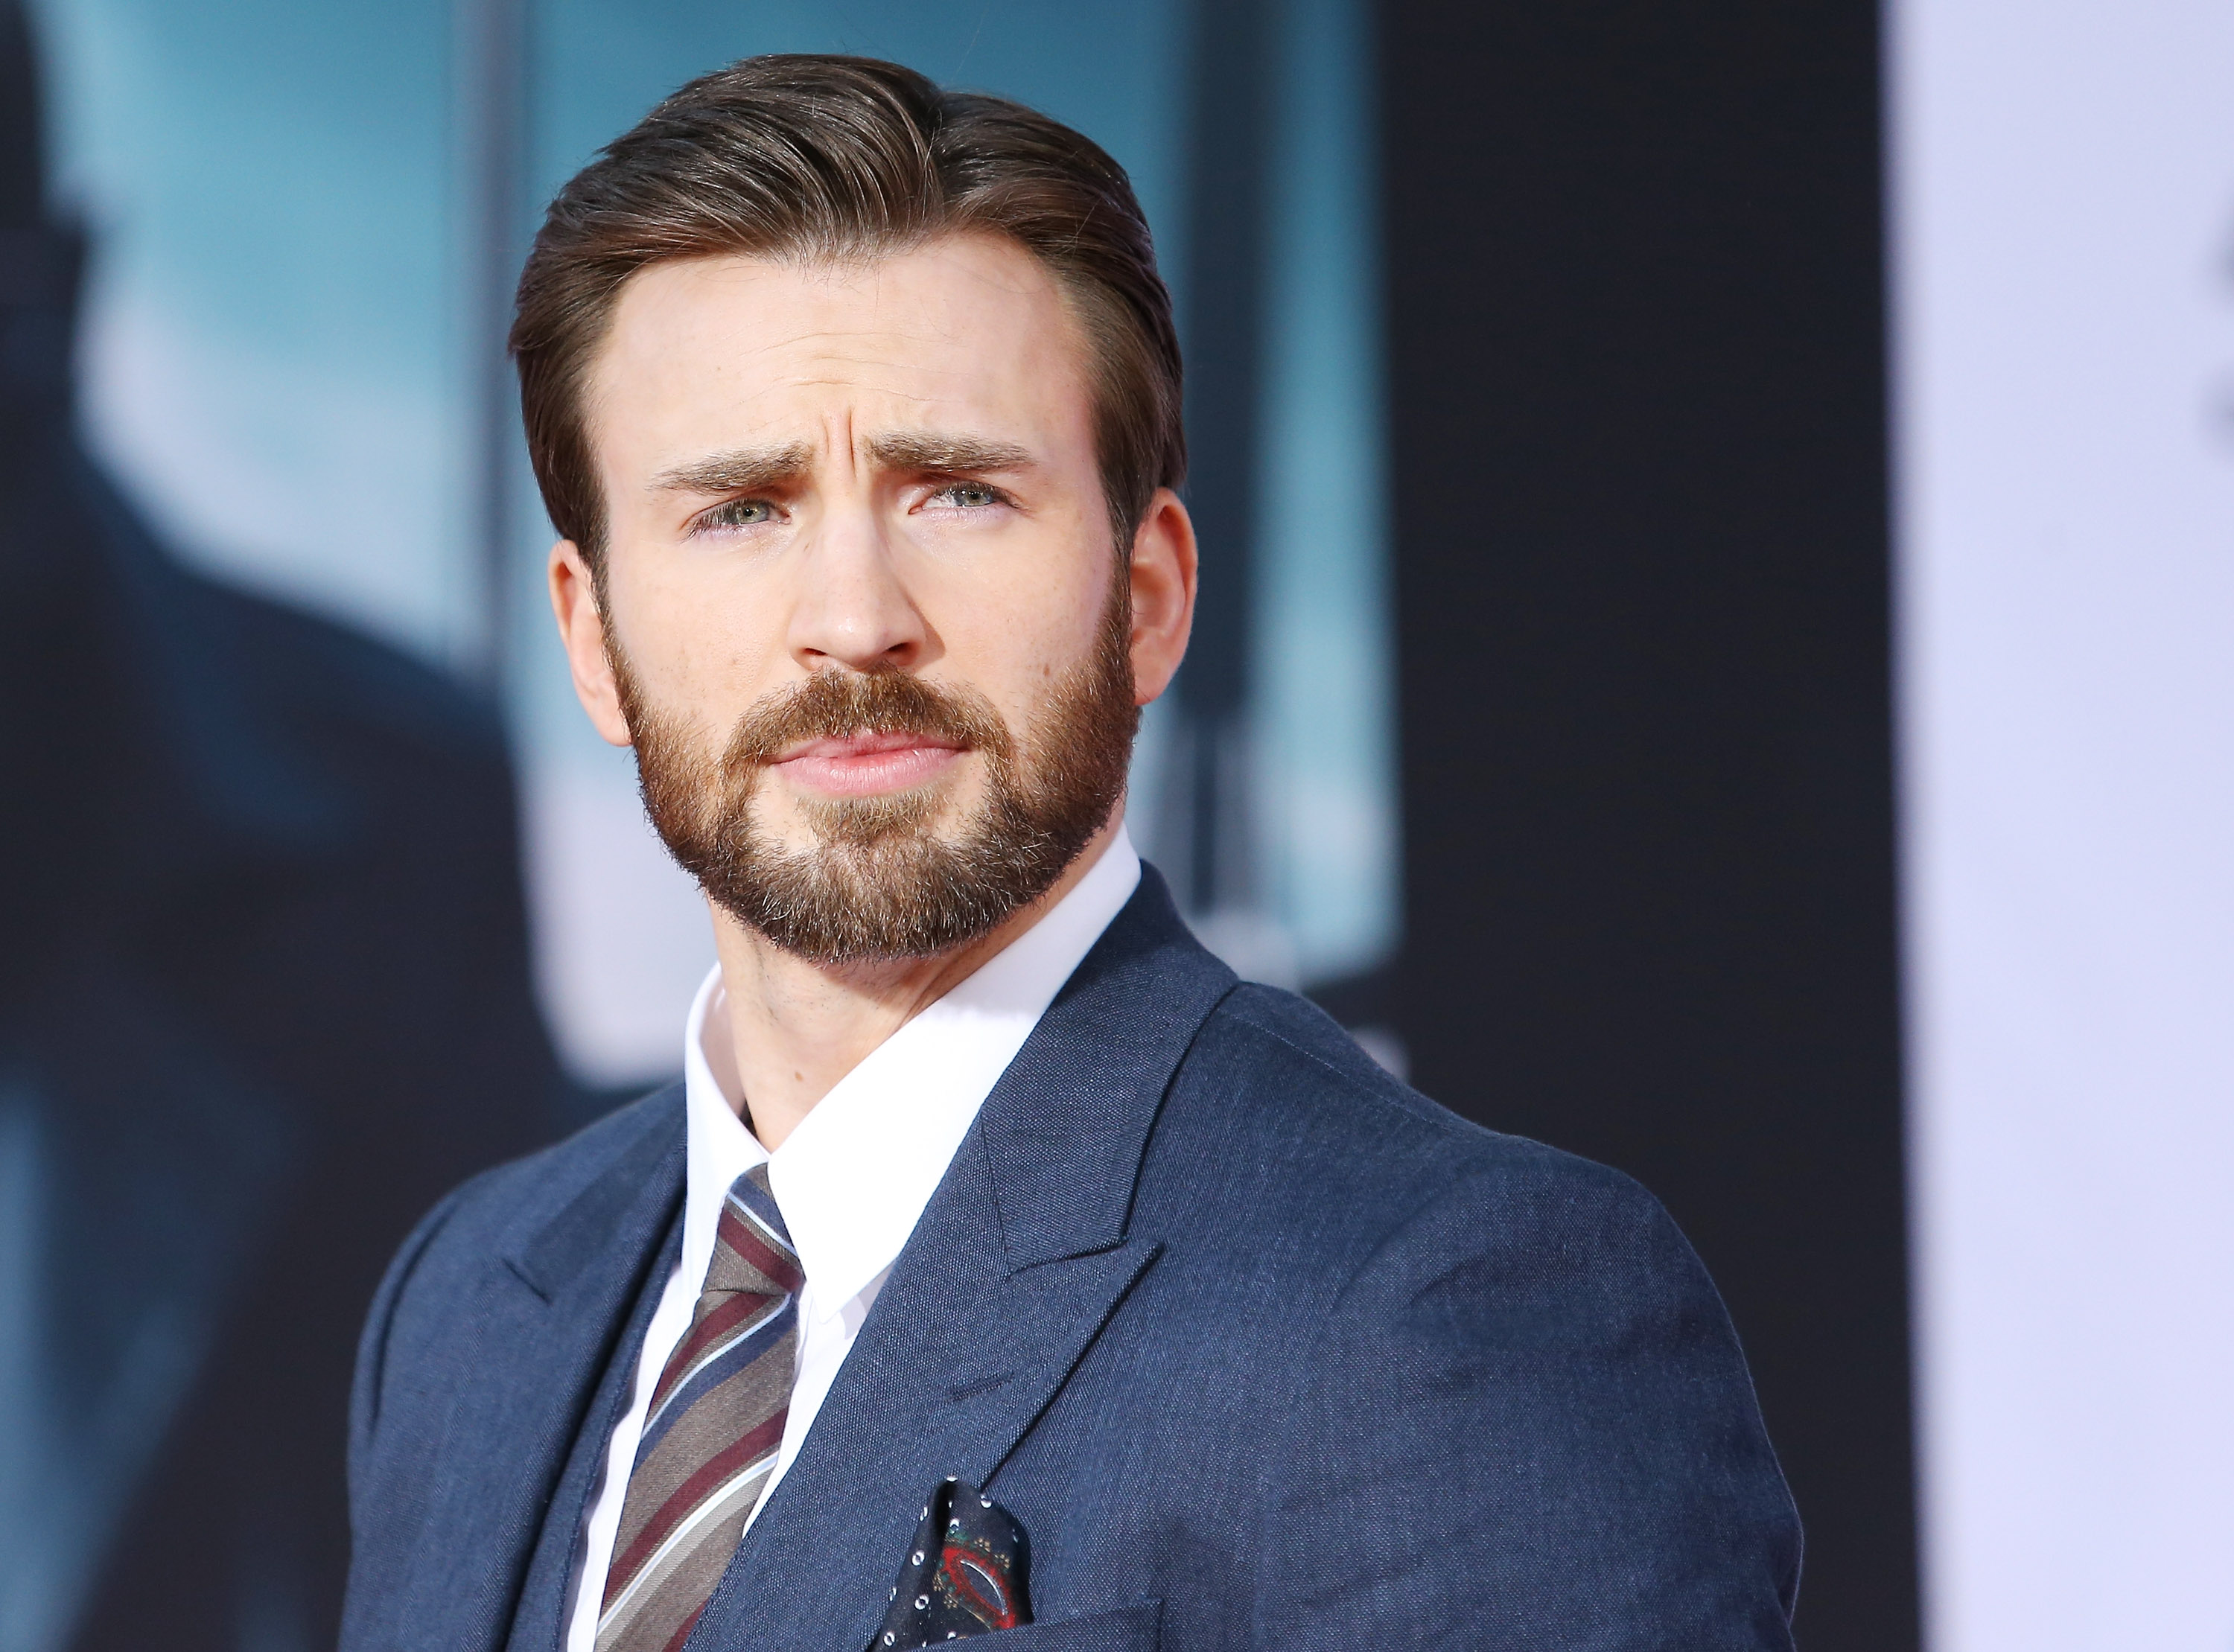 Chris Evans accidentally leaks NSFW photos on social media 'Avengers' co-star responds – Fox News